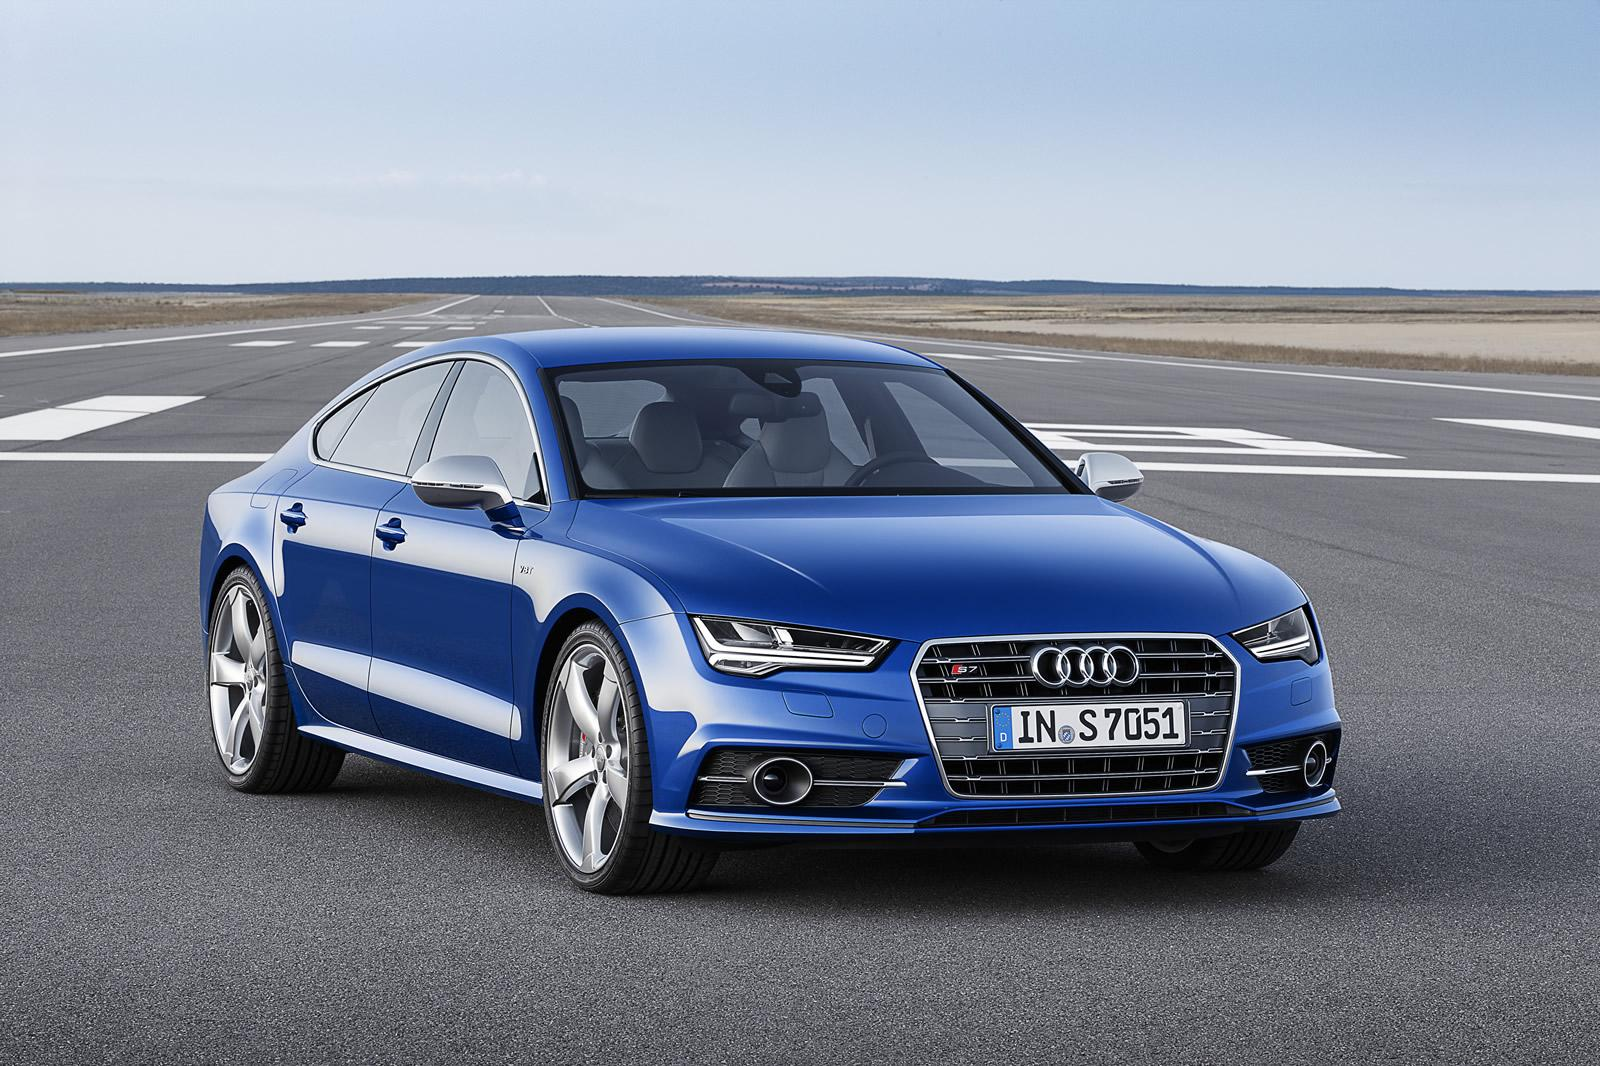 Audi S7 Sportback Gets 450 HP and Mild Facelift - Video, Photo Gallery